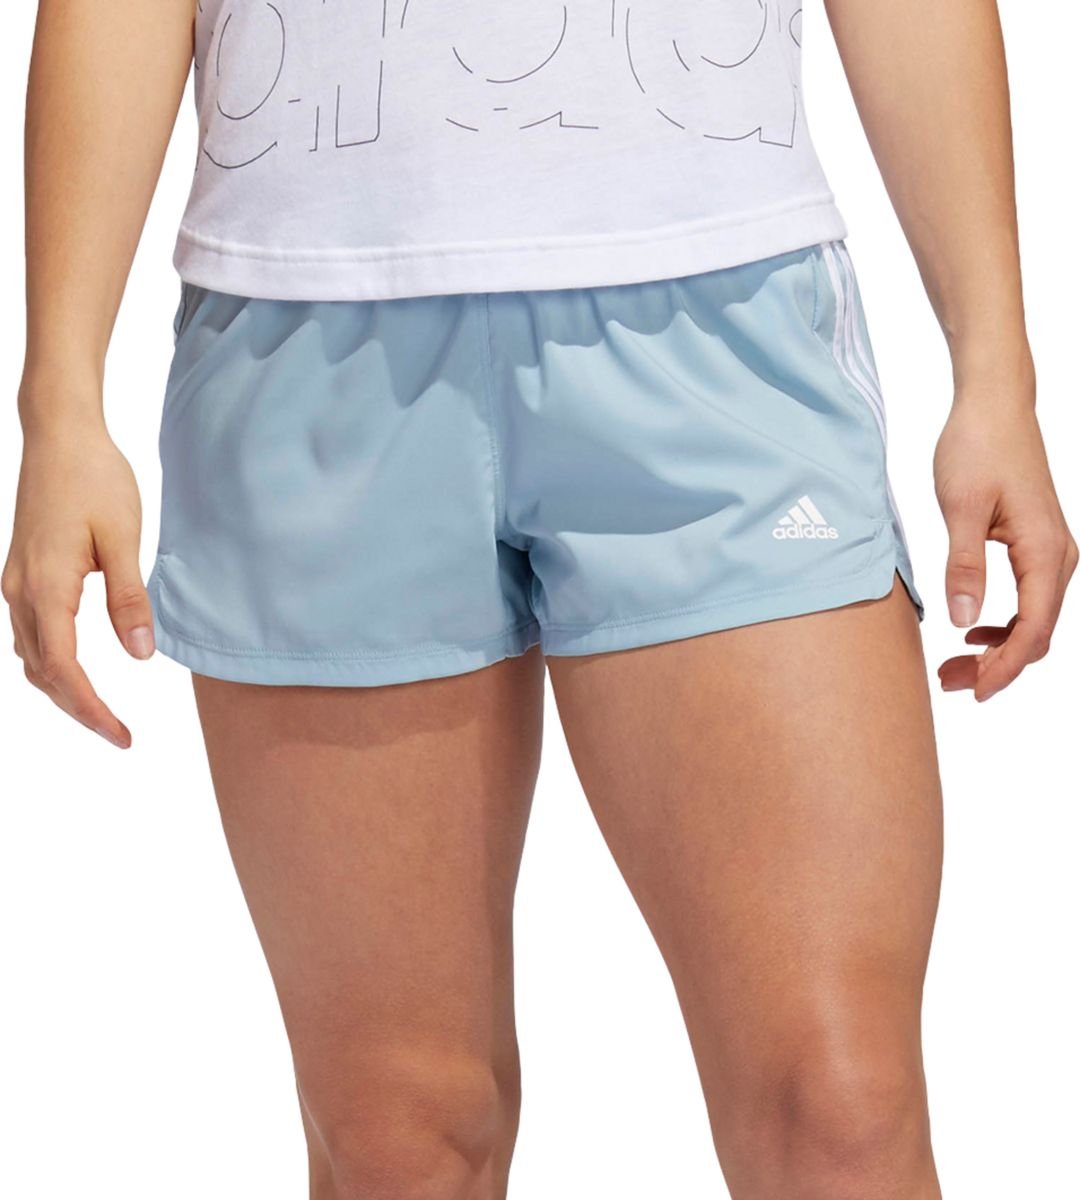 266df660 adidas Women's Pacer 3-Stripes Woven Shorts